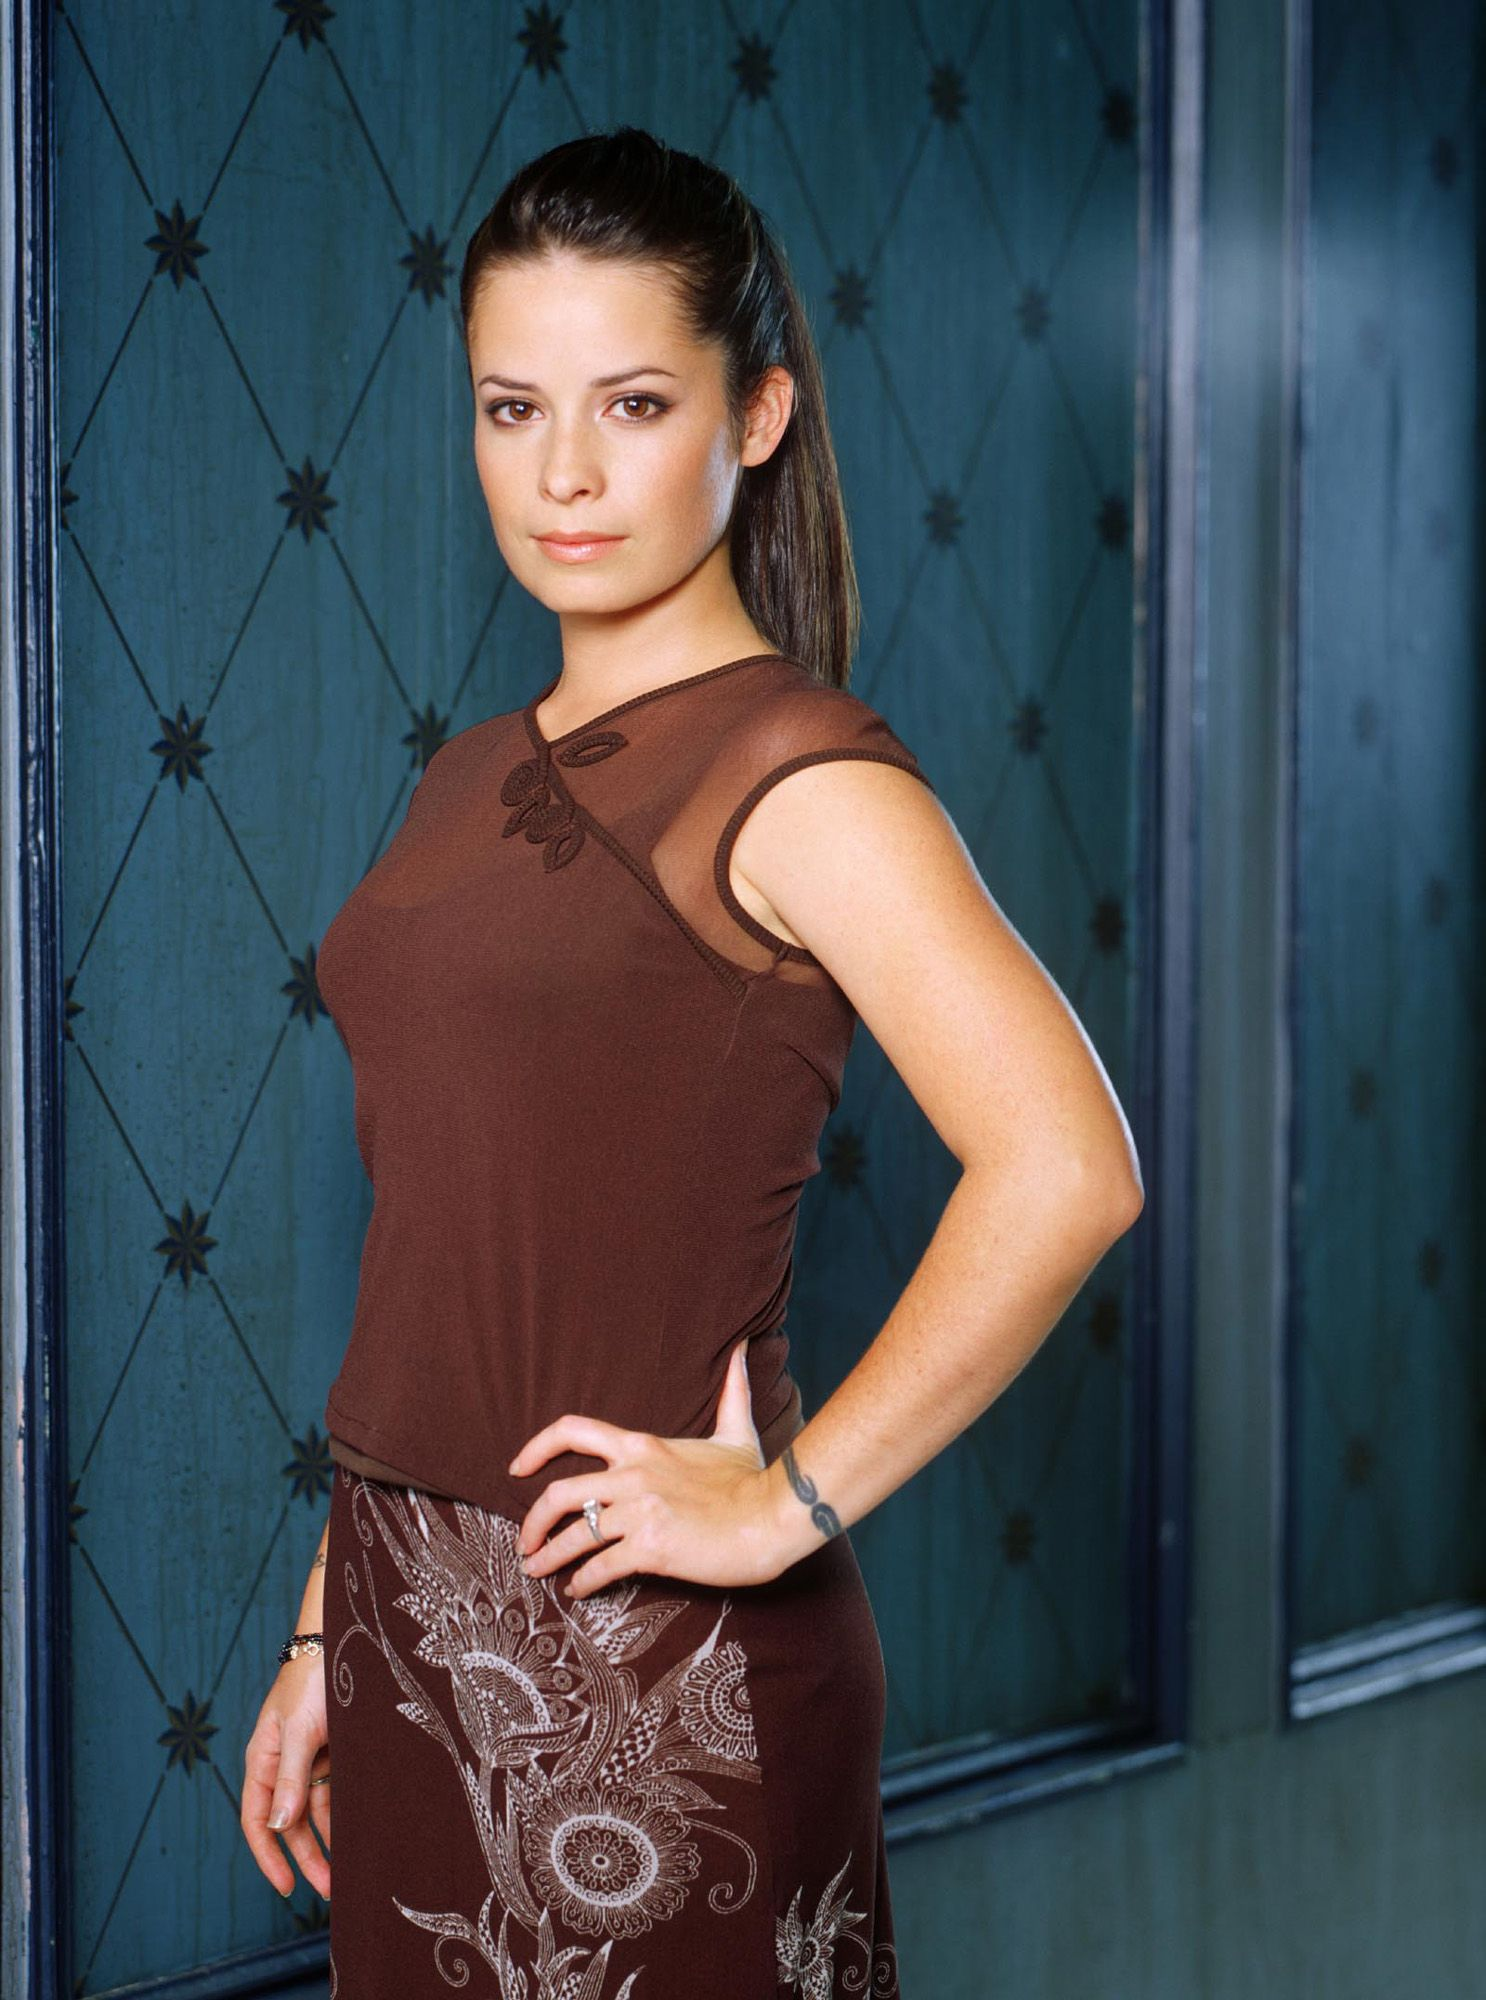 charmed tv series people - photo #45